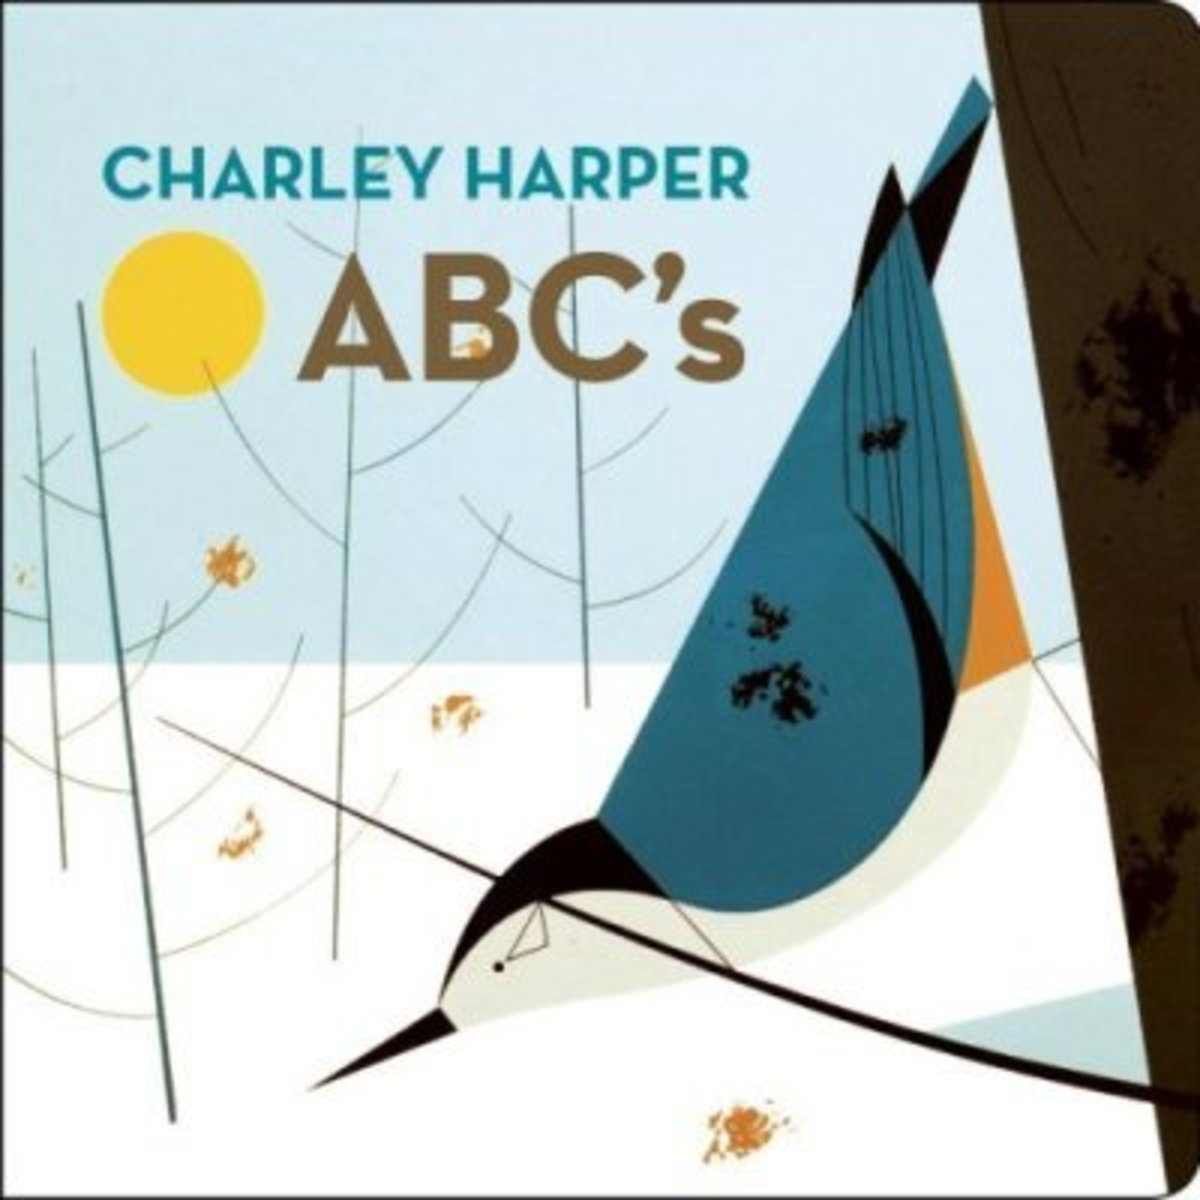 The Charley Harper ABCs Board Book comes in a chunky version and a skinny version.